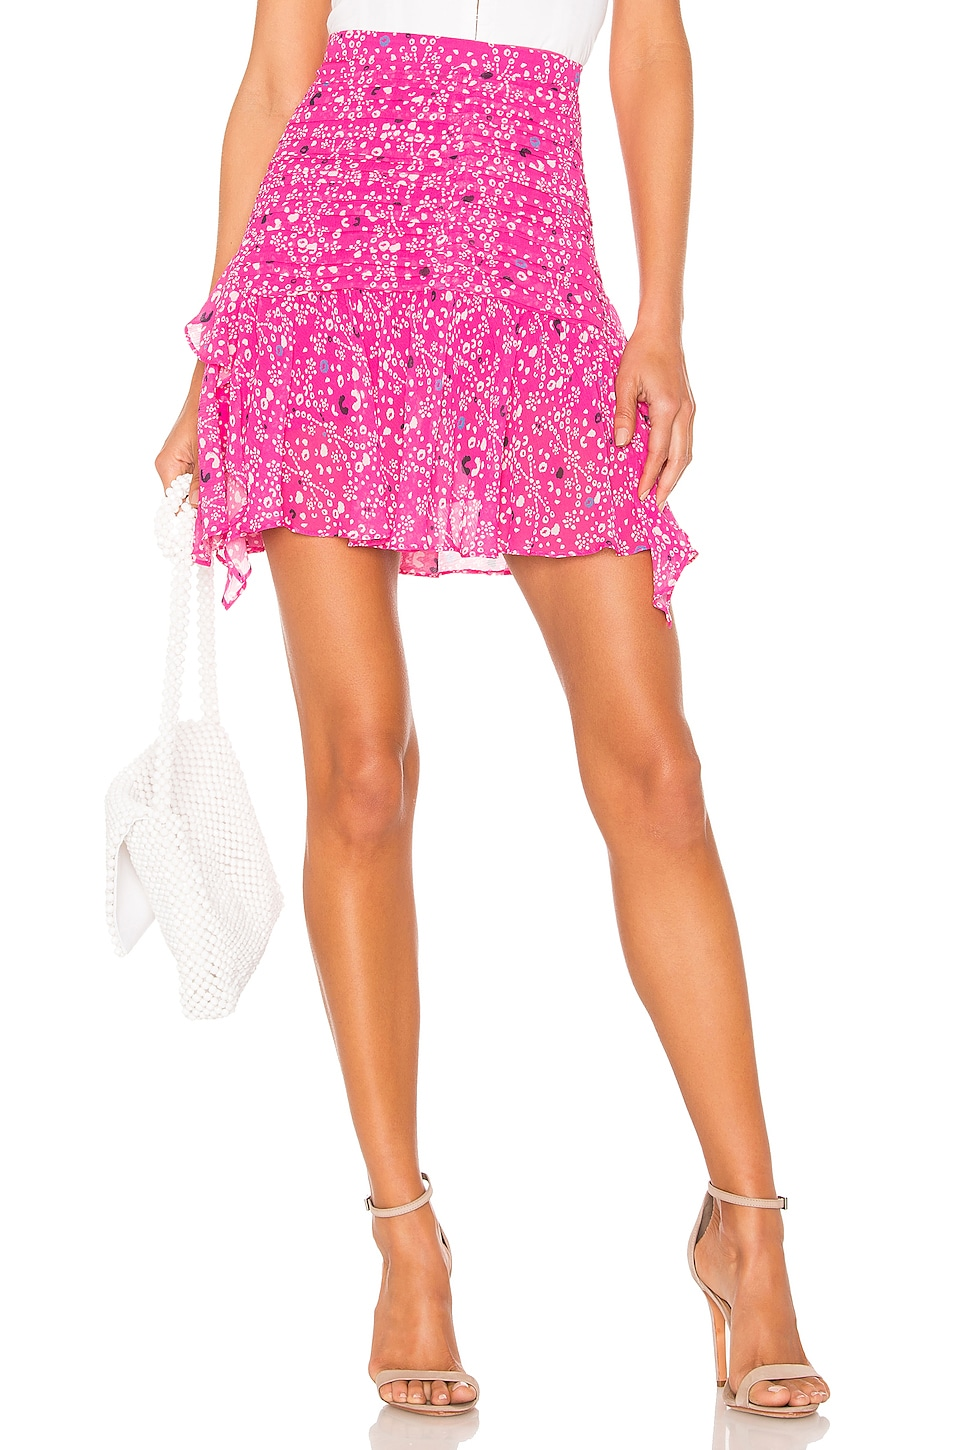 Tanya Taylor Abby Skirt in Hot Pink